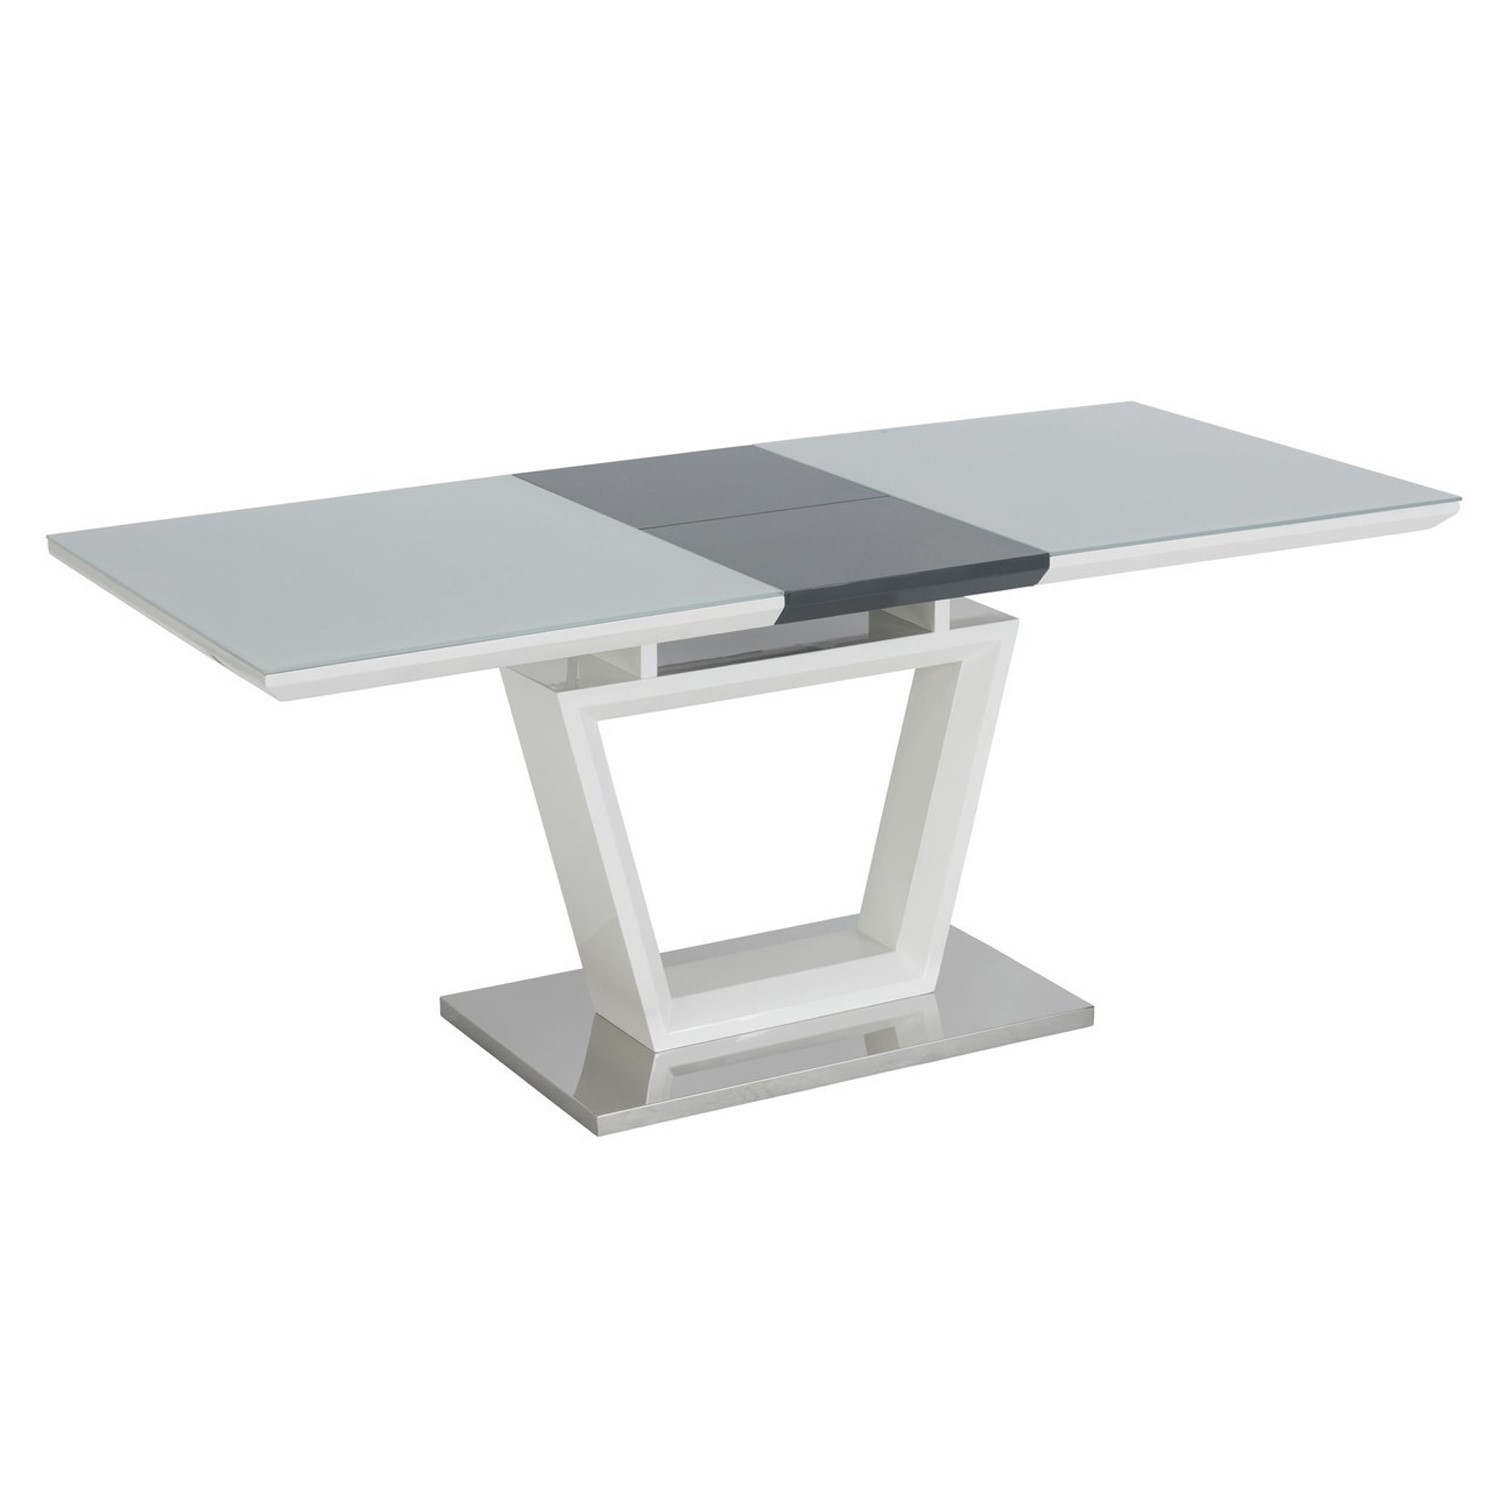 Arlington High Gloss White Extendable Dining Table With Grey Base Seats 4 6 Furniture123